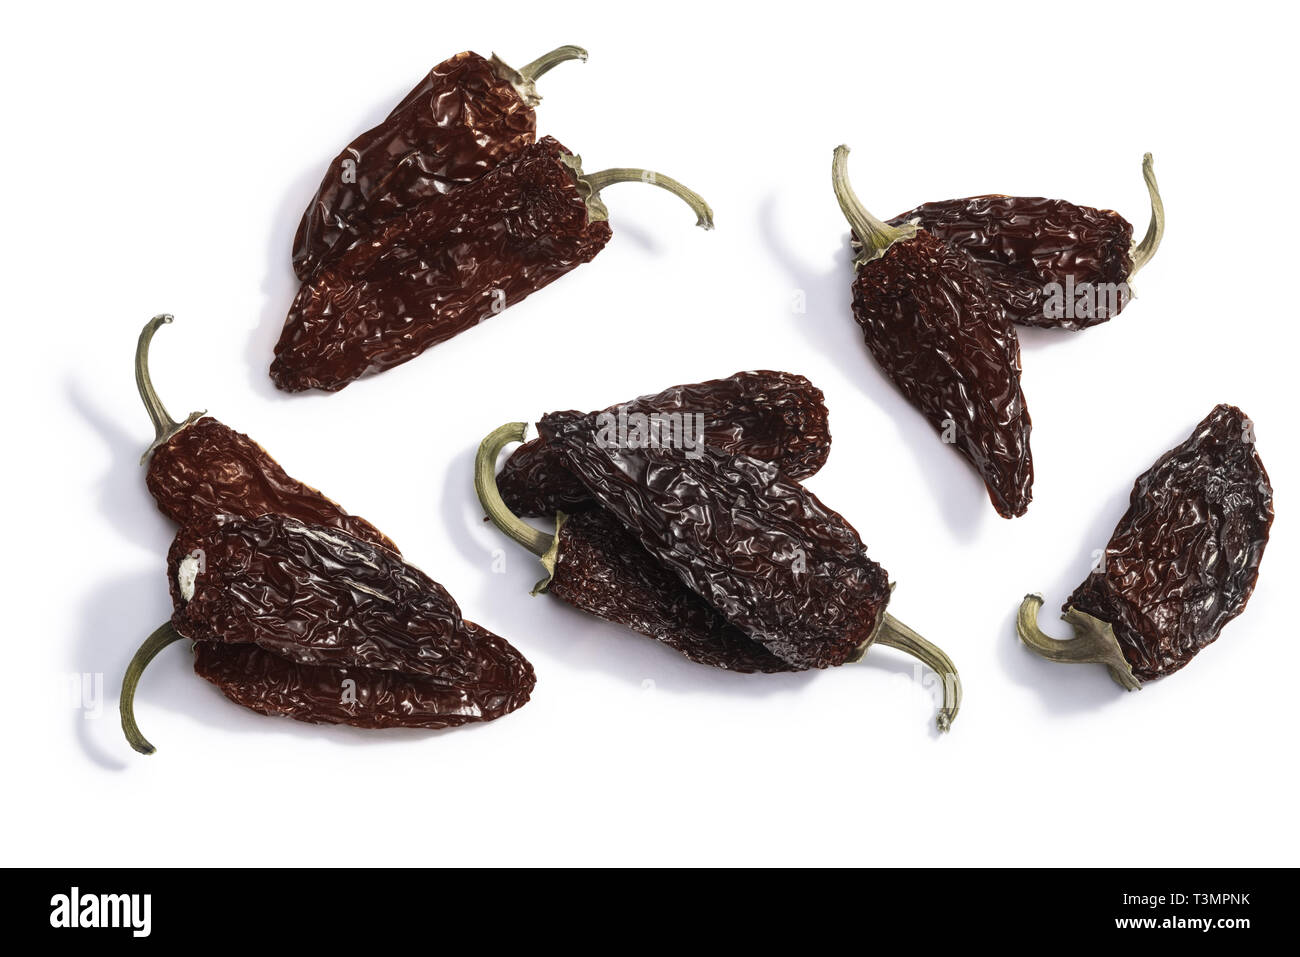 Chipotle Morita, a whole smoke-dried overripe Jalapeno chile